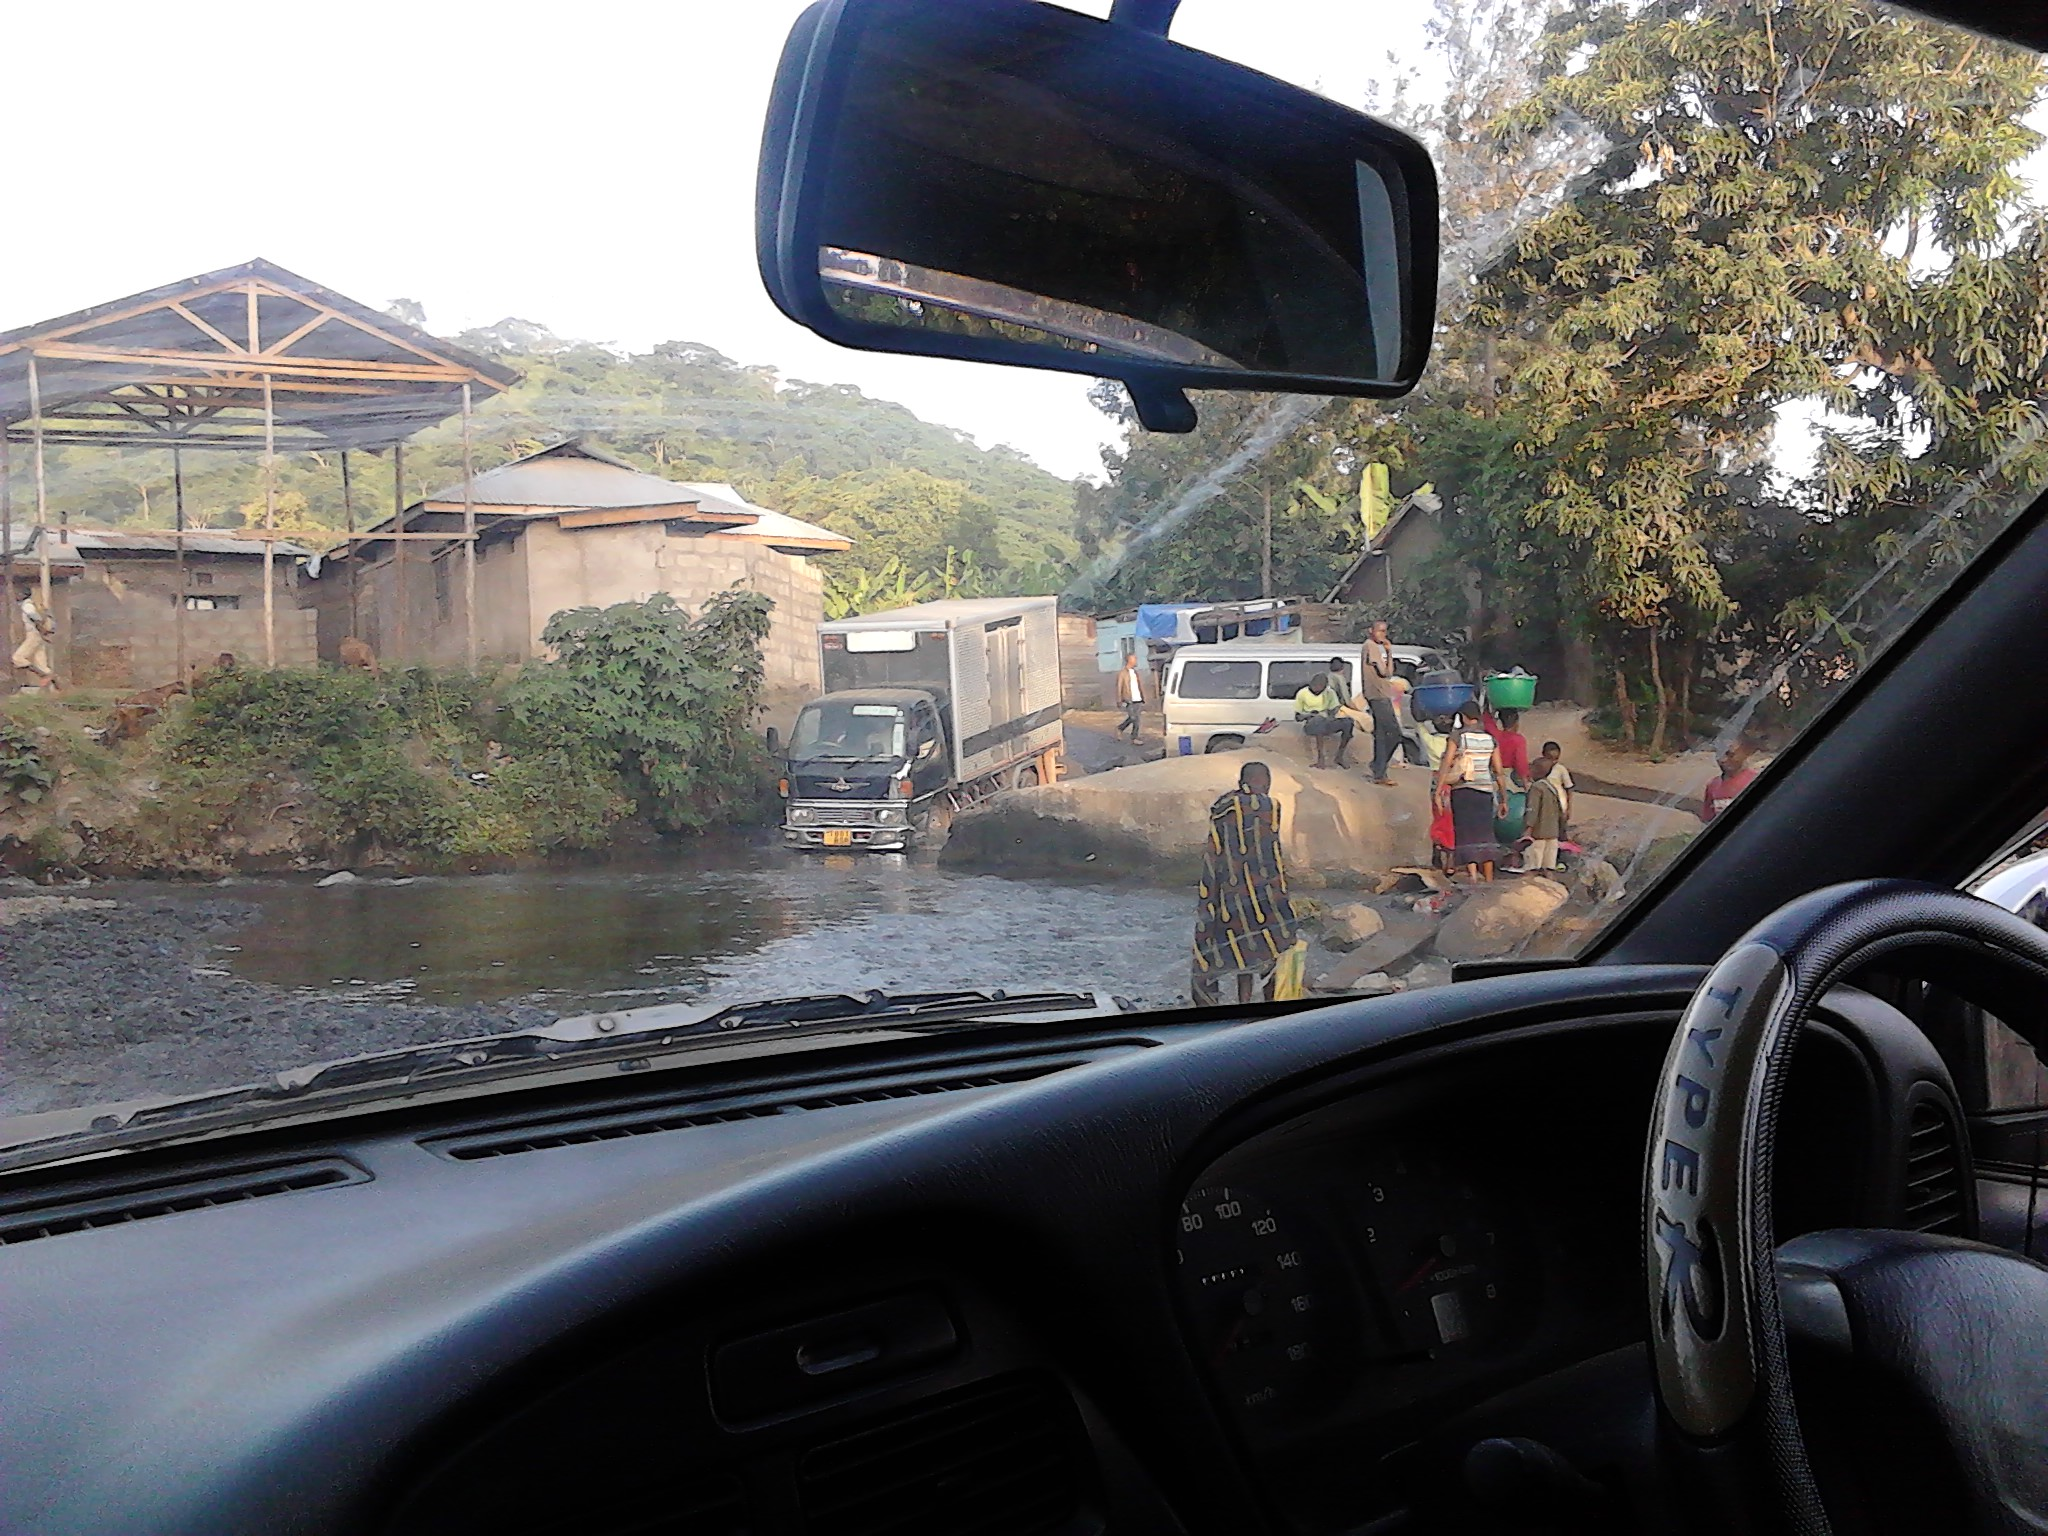 Typical road conditions in Arusha, Tanzania